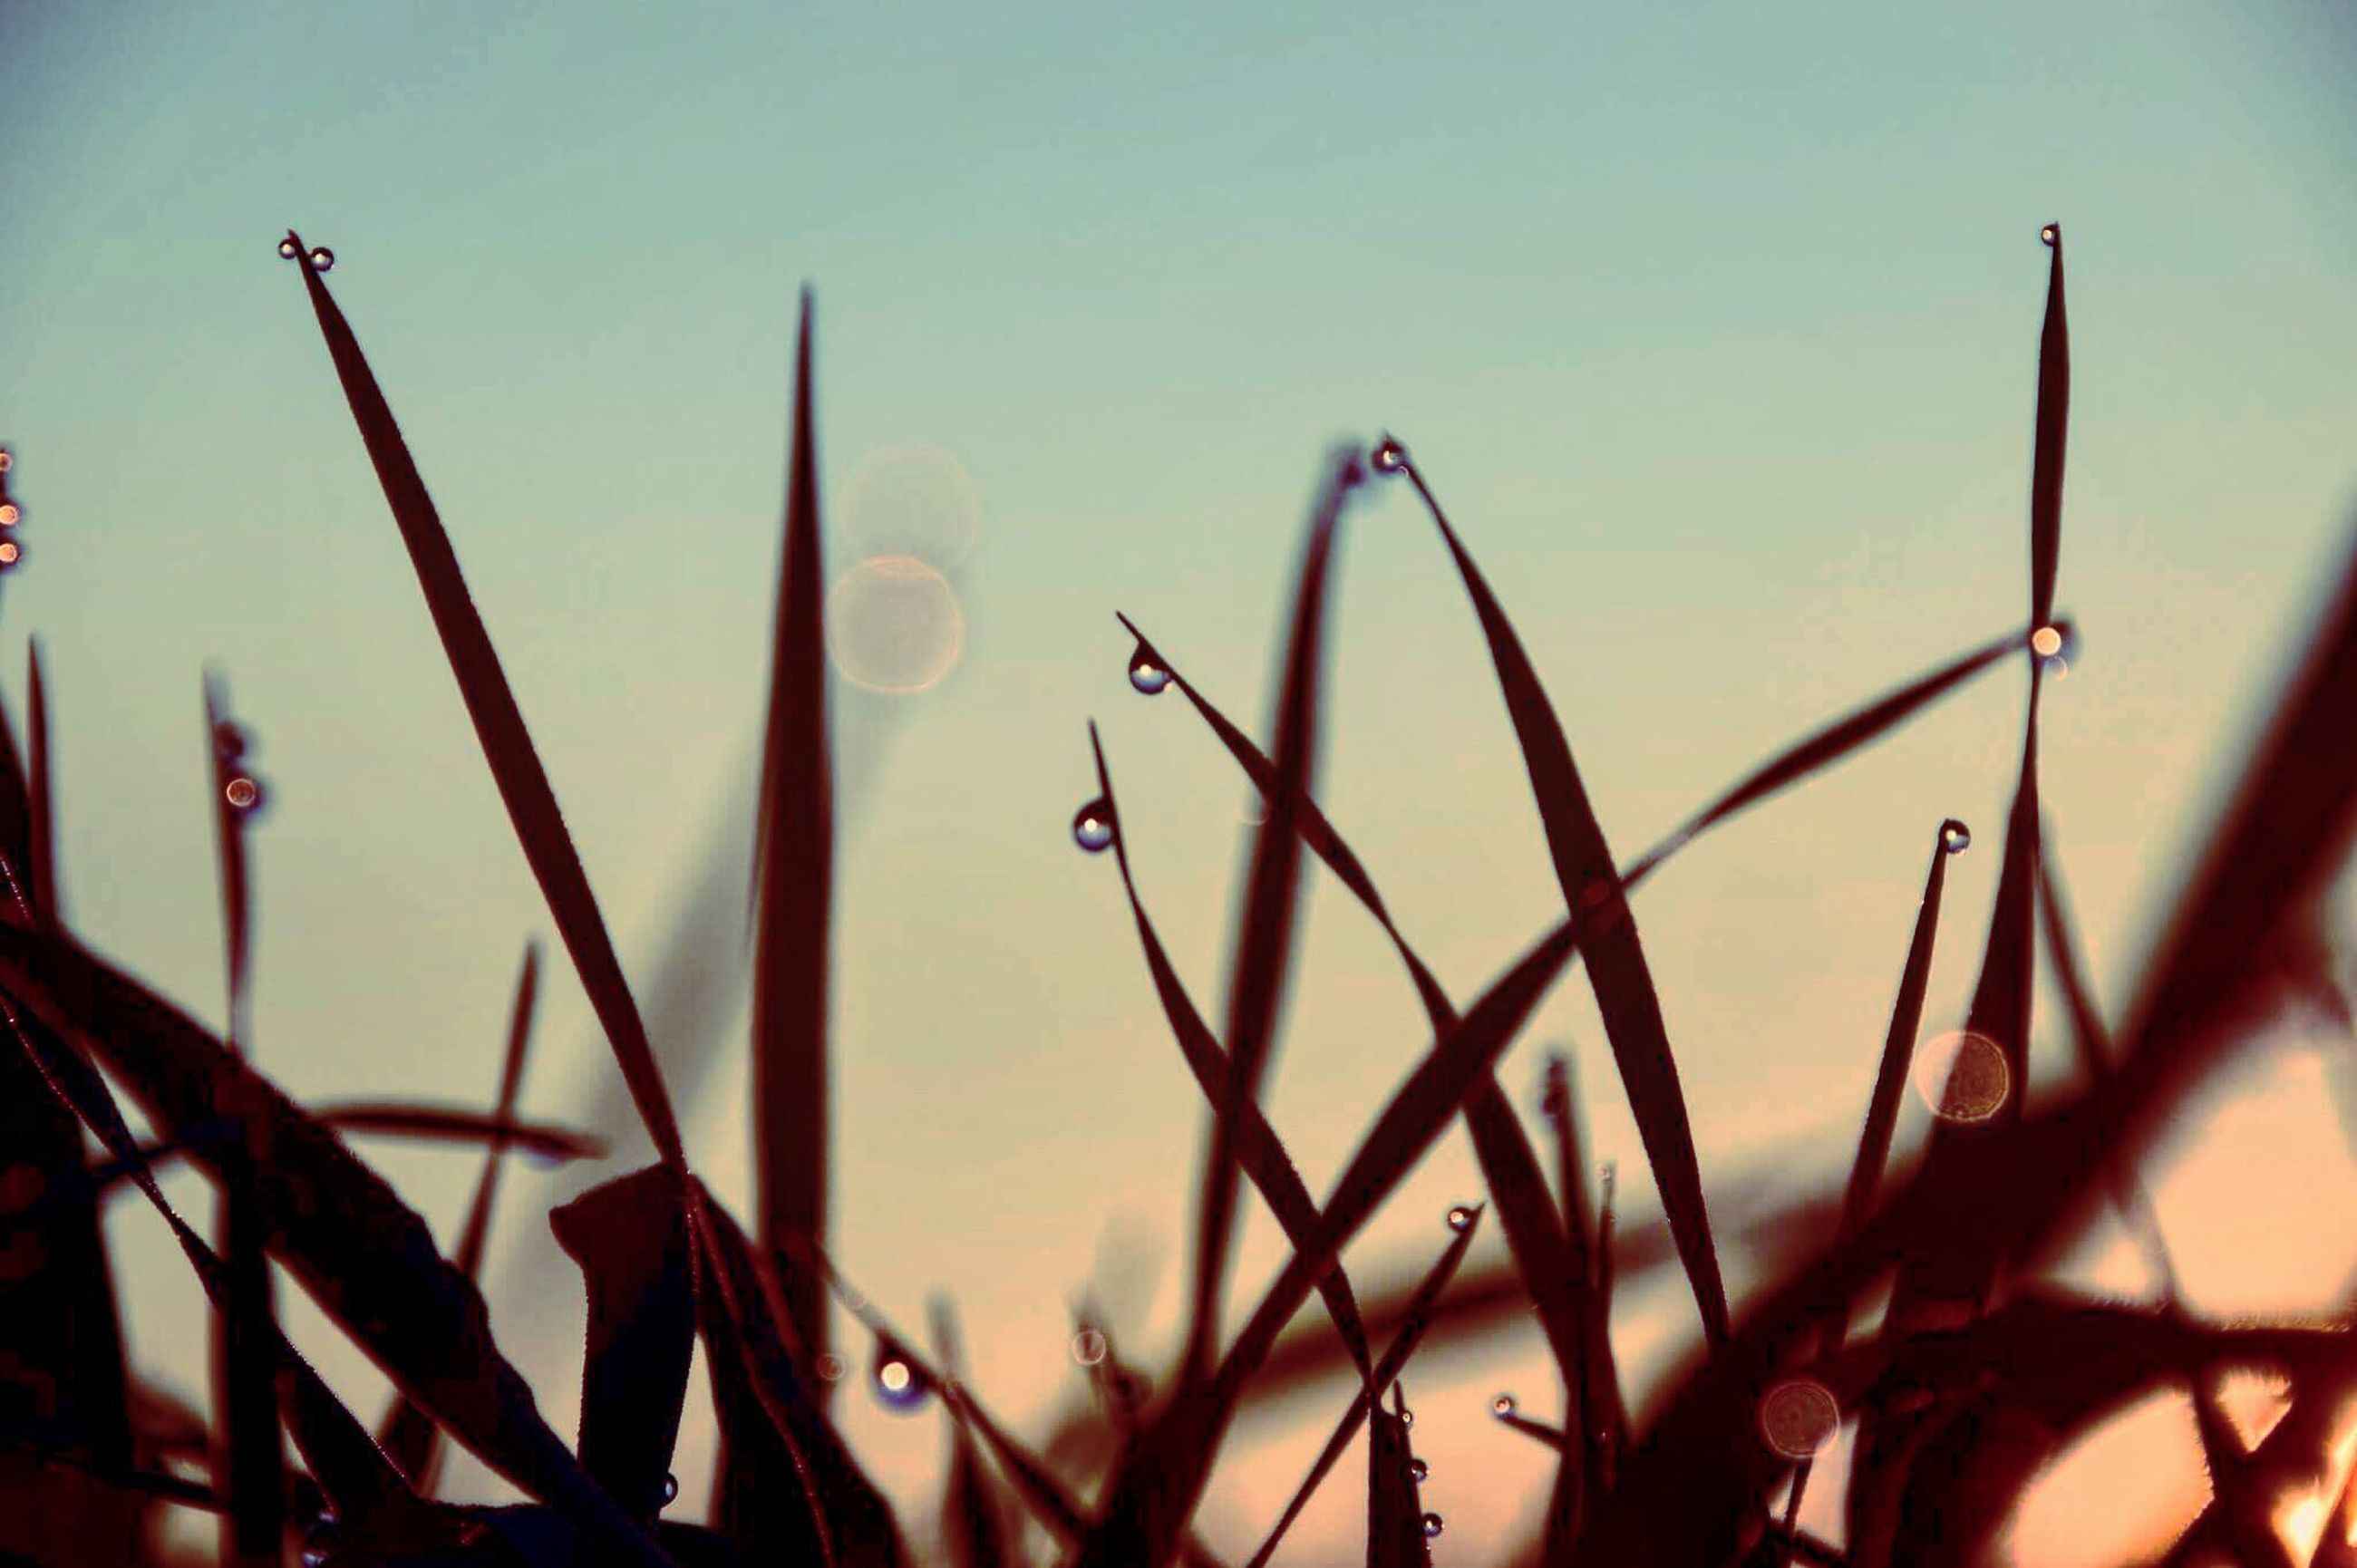 growth, nature, plant, close-up, no people, outdoors, tranquility, day, beauty in nature, sky